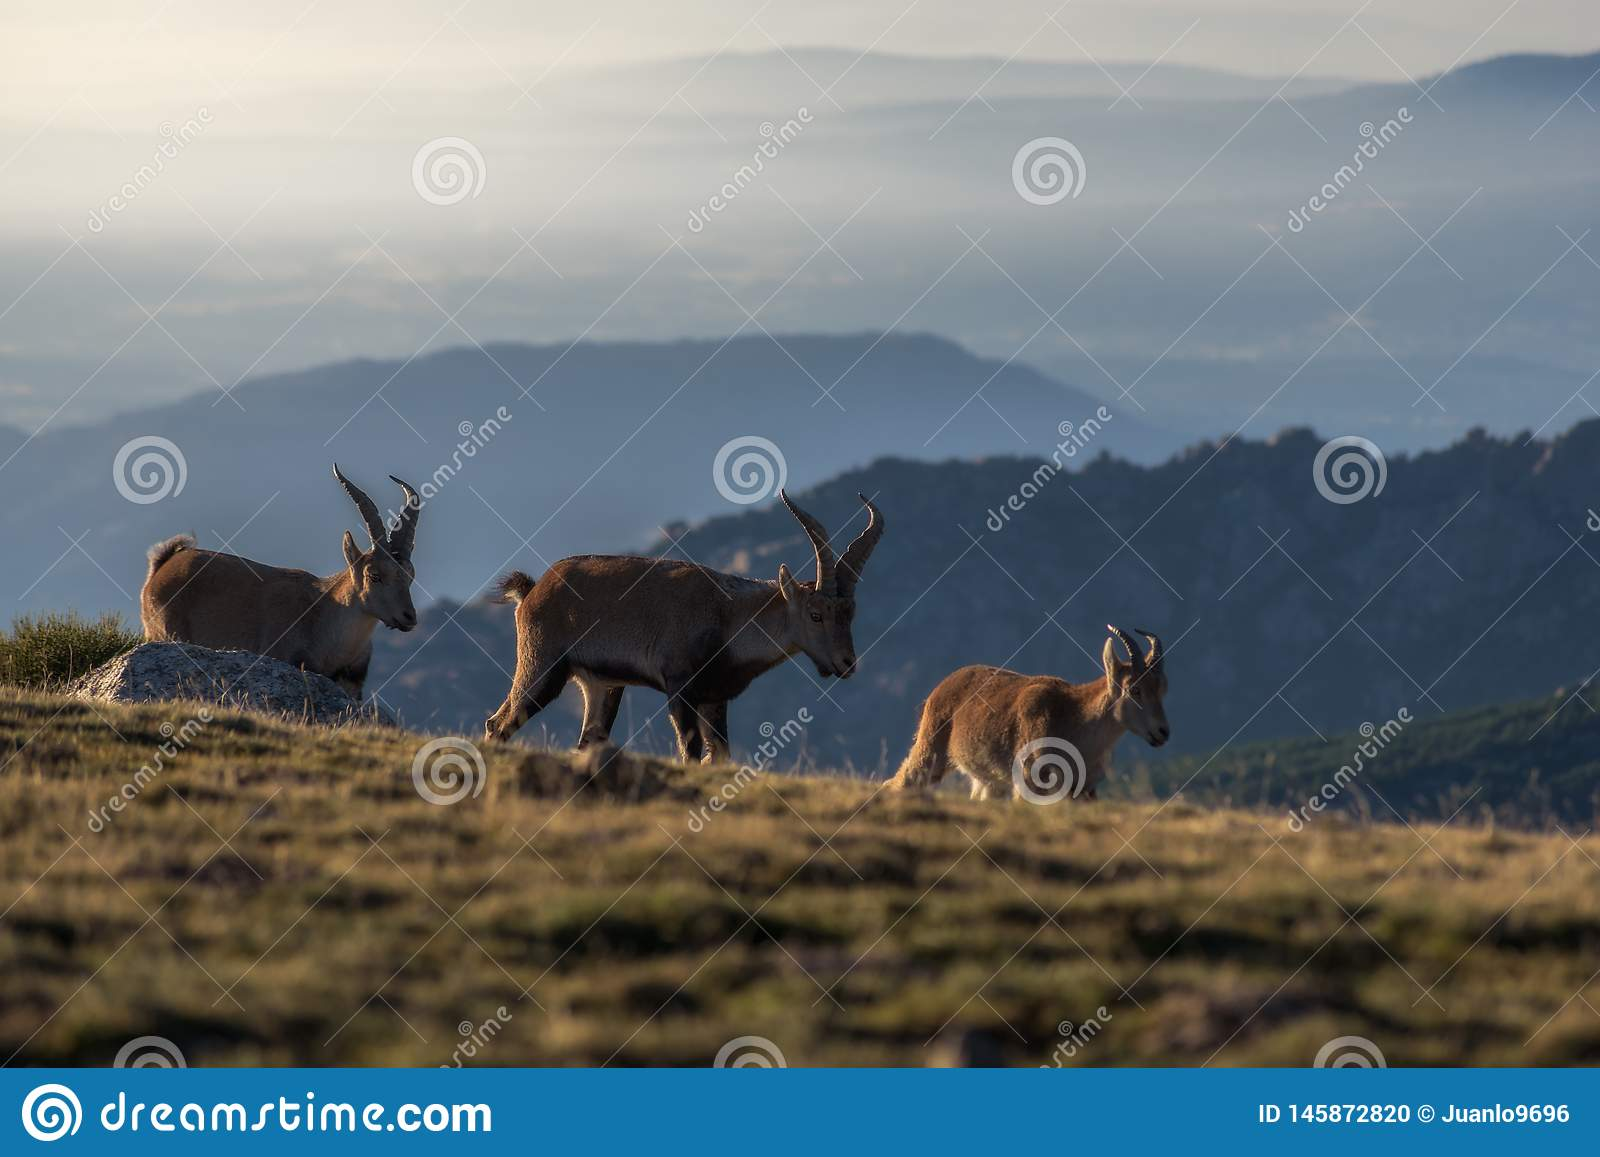 Goats in the mountain. Wild mountain goats at dawn on the National Park of Guadarrama,Spain stock photo